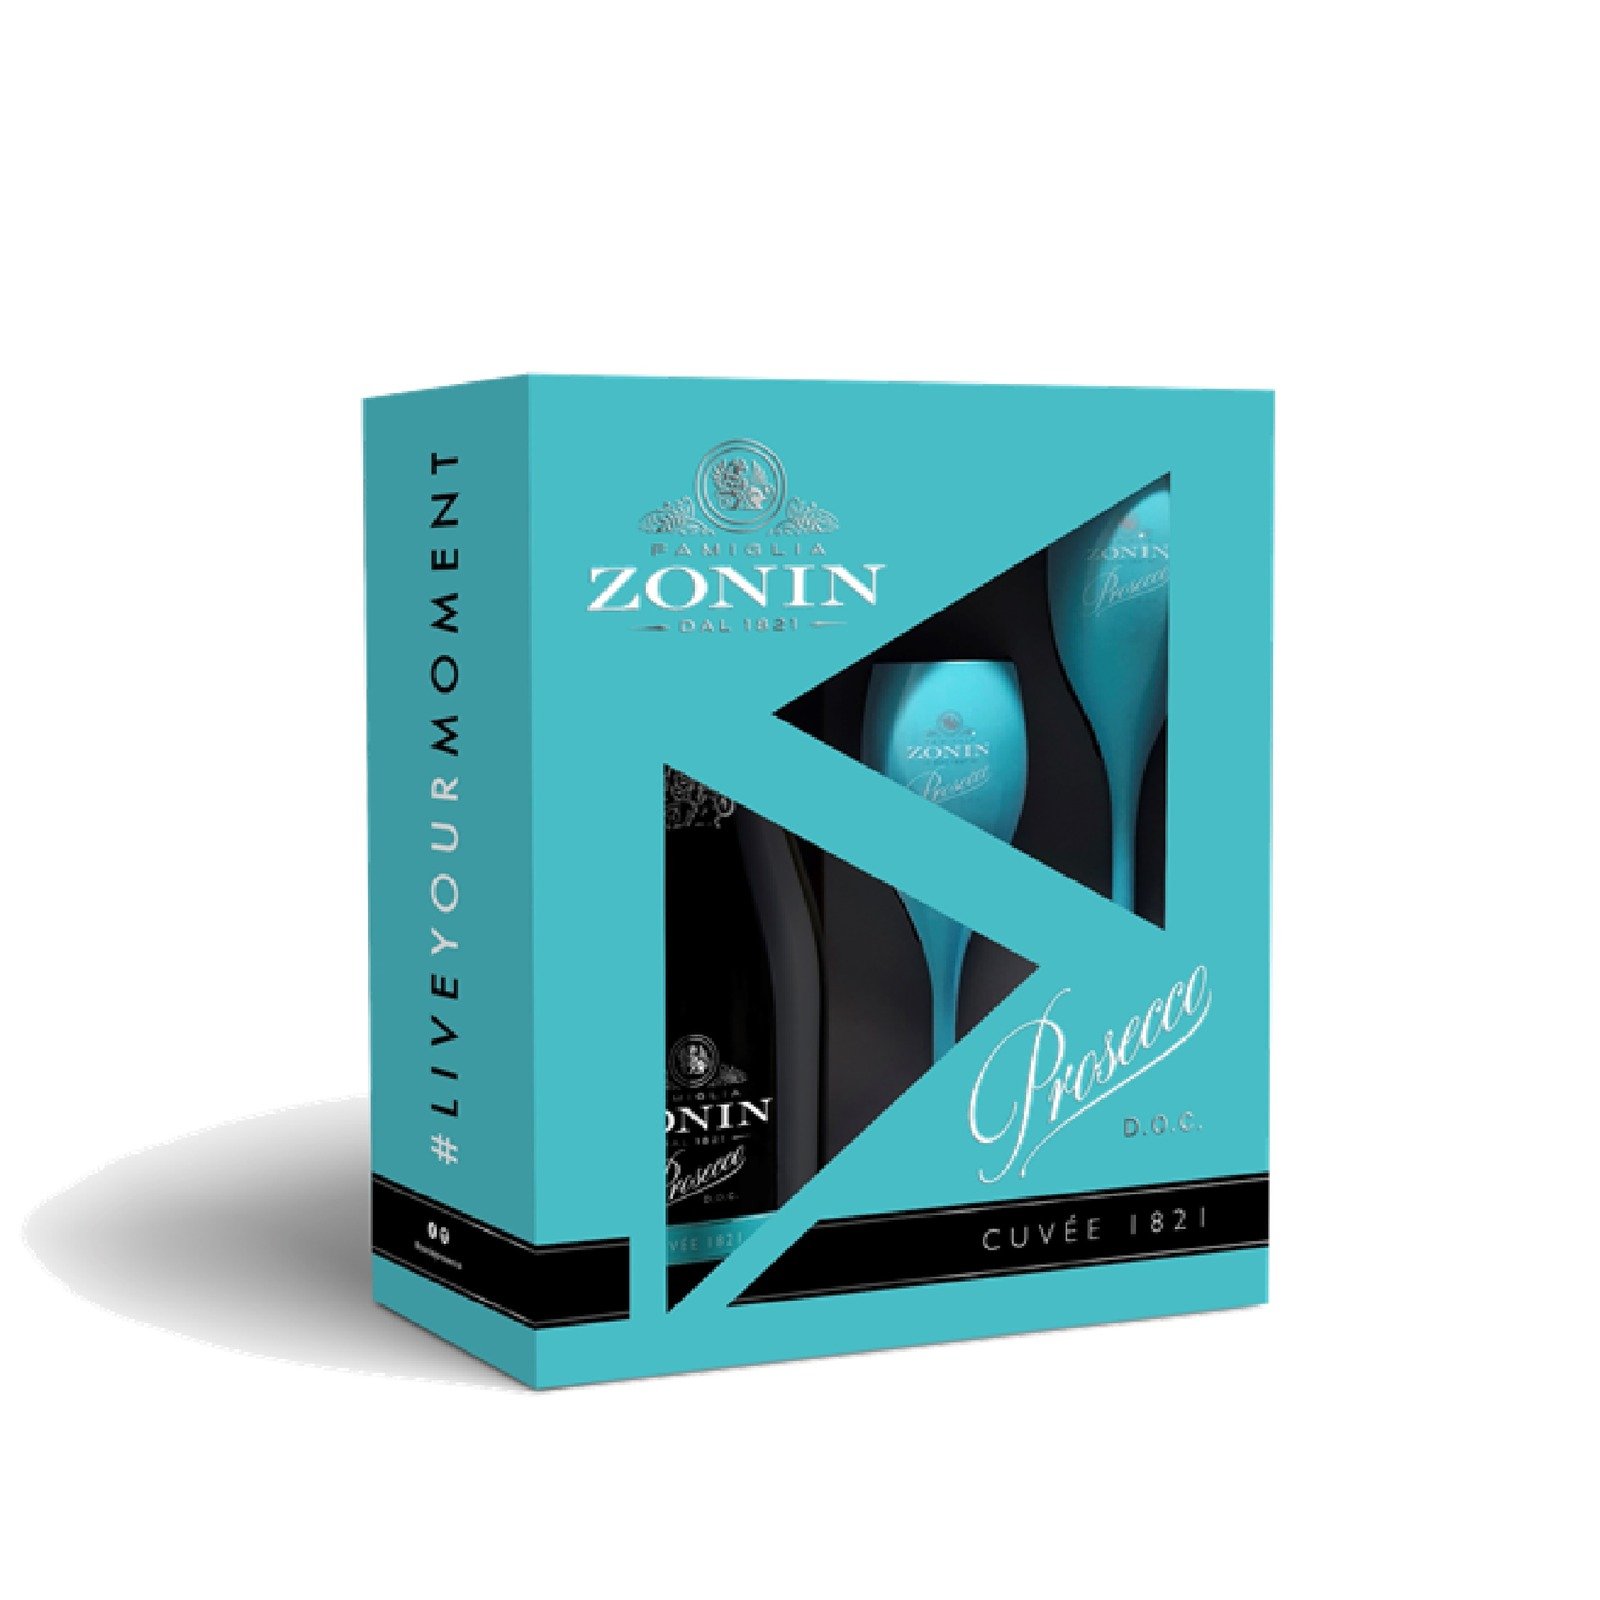 ZONIN CUVEE 1821 PROSECCO GIFT PACK